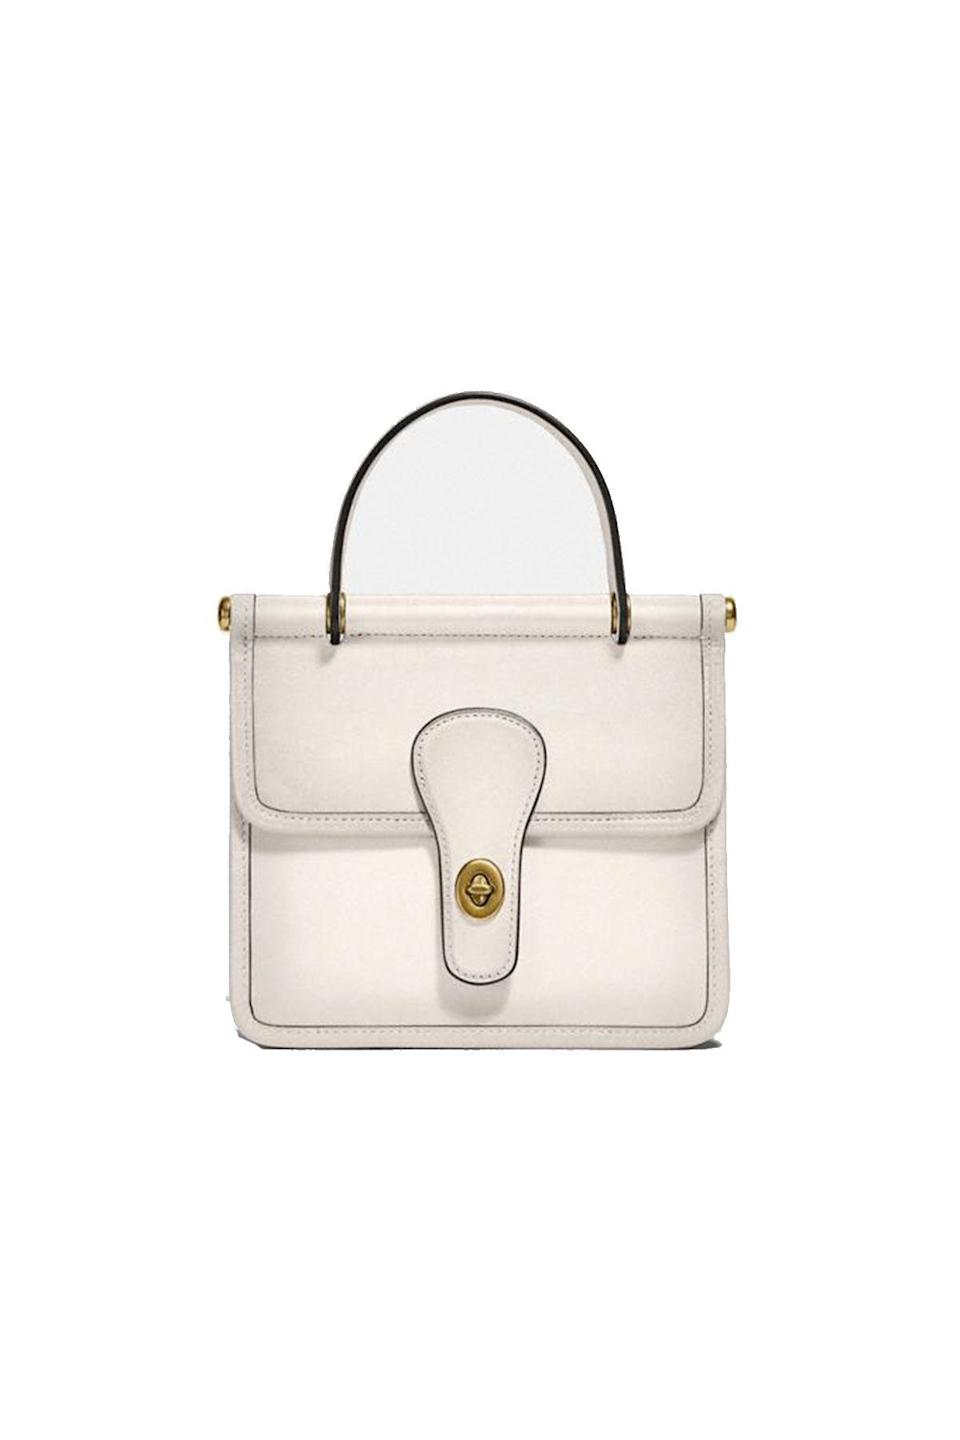 """<p><strong>Coach</strong></p><p>coach.com</p><p><strong>$350.00</strong></p><p><a href=""""https://go.redirectingat.com?id=74968X1596630&url=https%3A%2F%2Fwww.coach.com%2Fcoach-willis-top-handle-18%2F5789.html%3Fdwvar_color%3DB4%252FHA&sref=https%3A%2F%2Fwww.townandcountrymag.com%2Fstyle%2Ffashion-trends%2Fg22576837%2Ffall-outfits%2F"""" rel=""""nofollow noopener"""" target=""""_blank"""" data-ylk=""""slk:Shop Now"""" class=""""link rapid-noclick-resp"""">Shop Now</a></p>"""